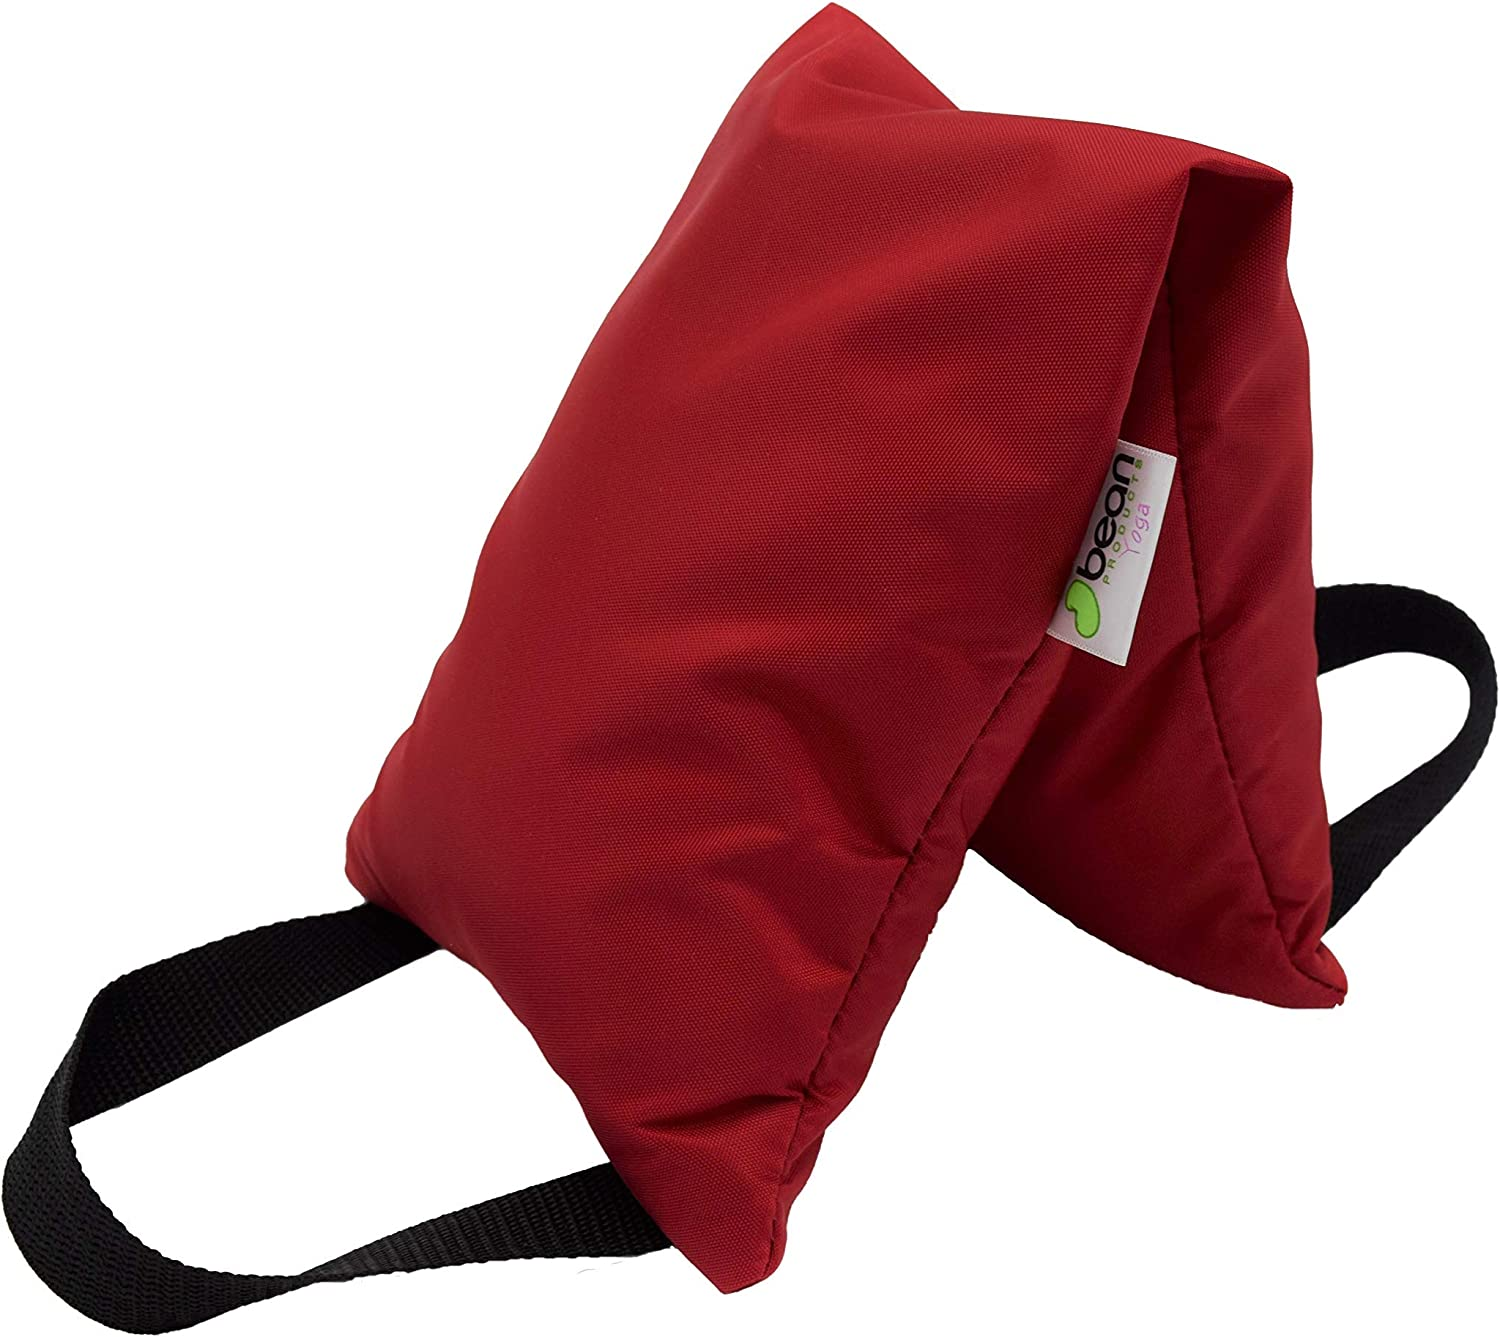 Bean Products Directly managed store 10 Manufacturer regenerated product LB Yoga Sandbag Two Made Filled Design Handle -